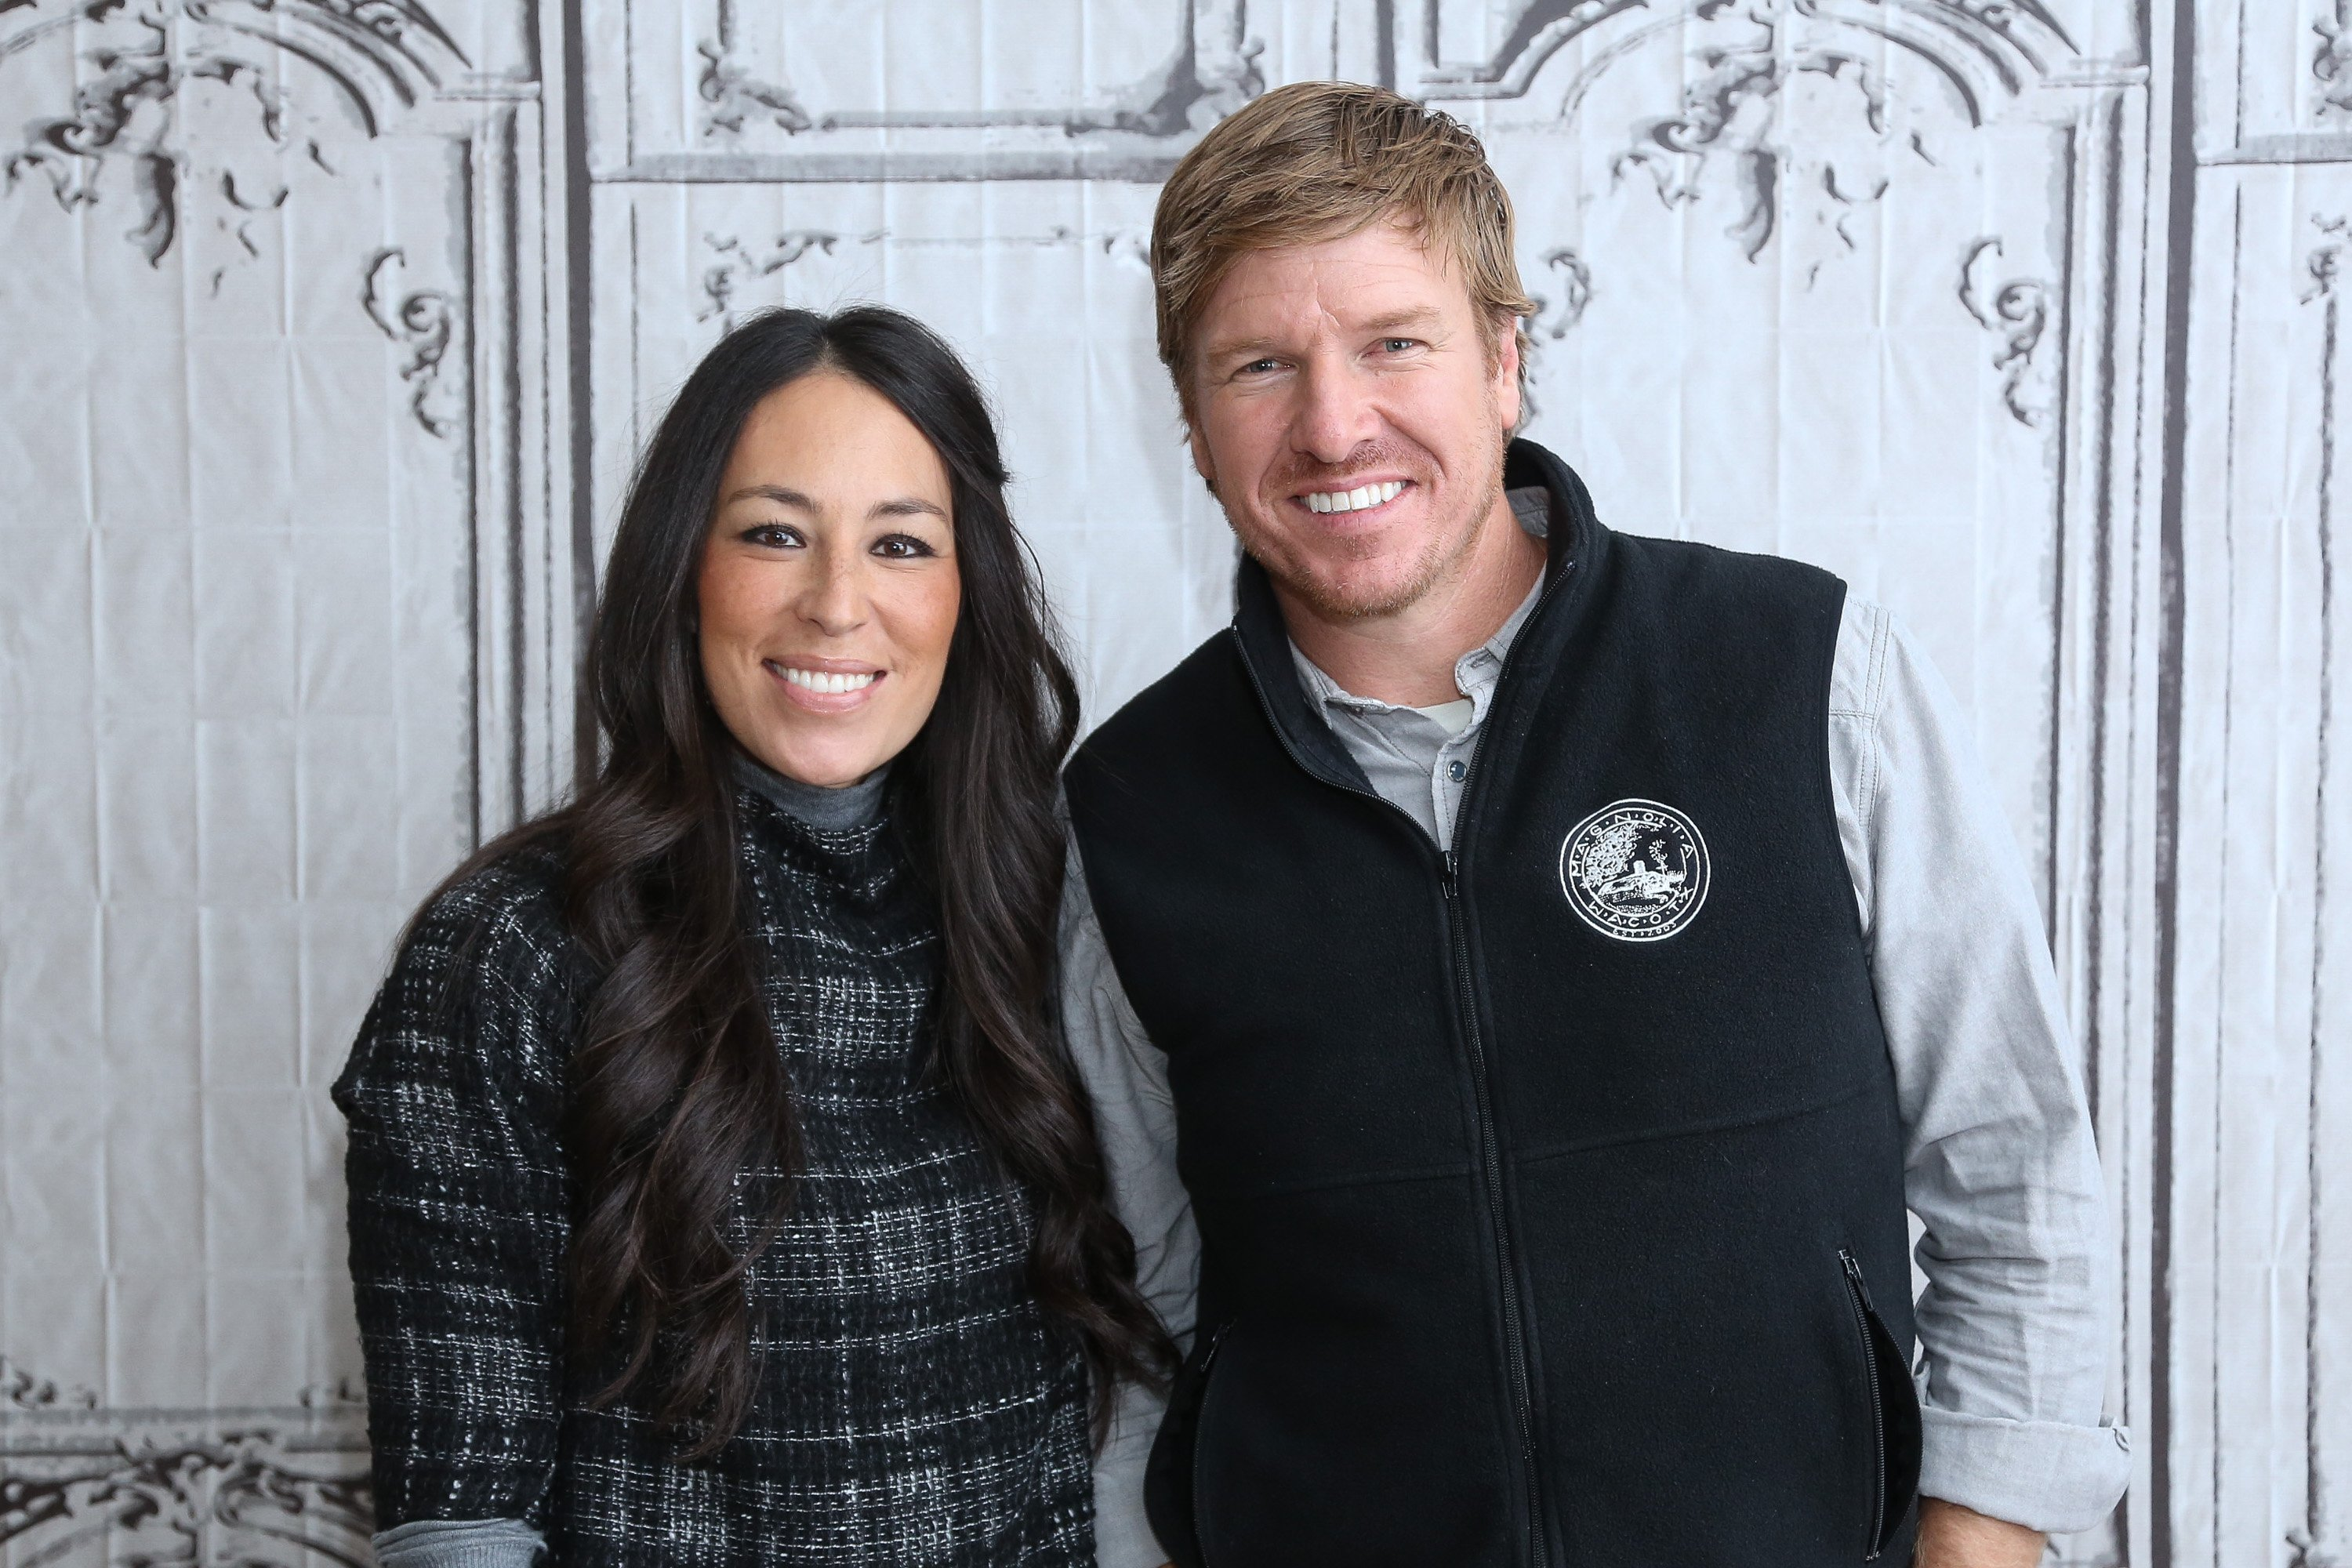 """The stars of """"Fixer Upper"""" Chip and Joanna Gaines at AOL Studios in New York, December 8, 2015. ' Photo: Getty Images."""